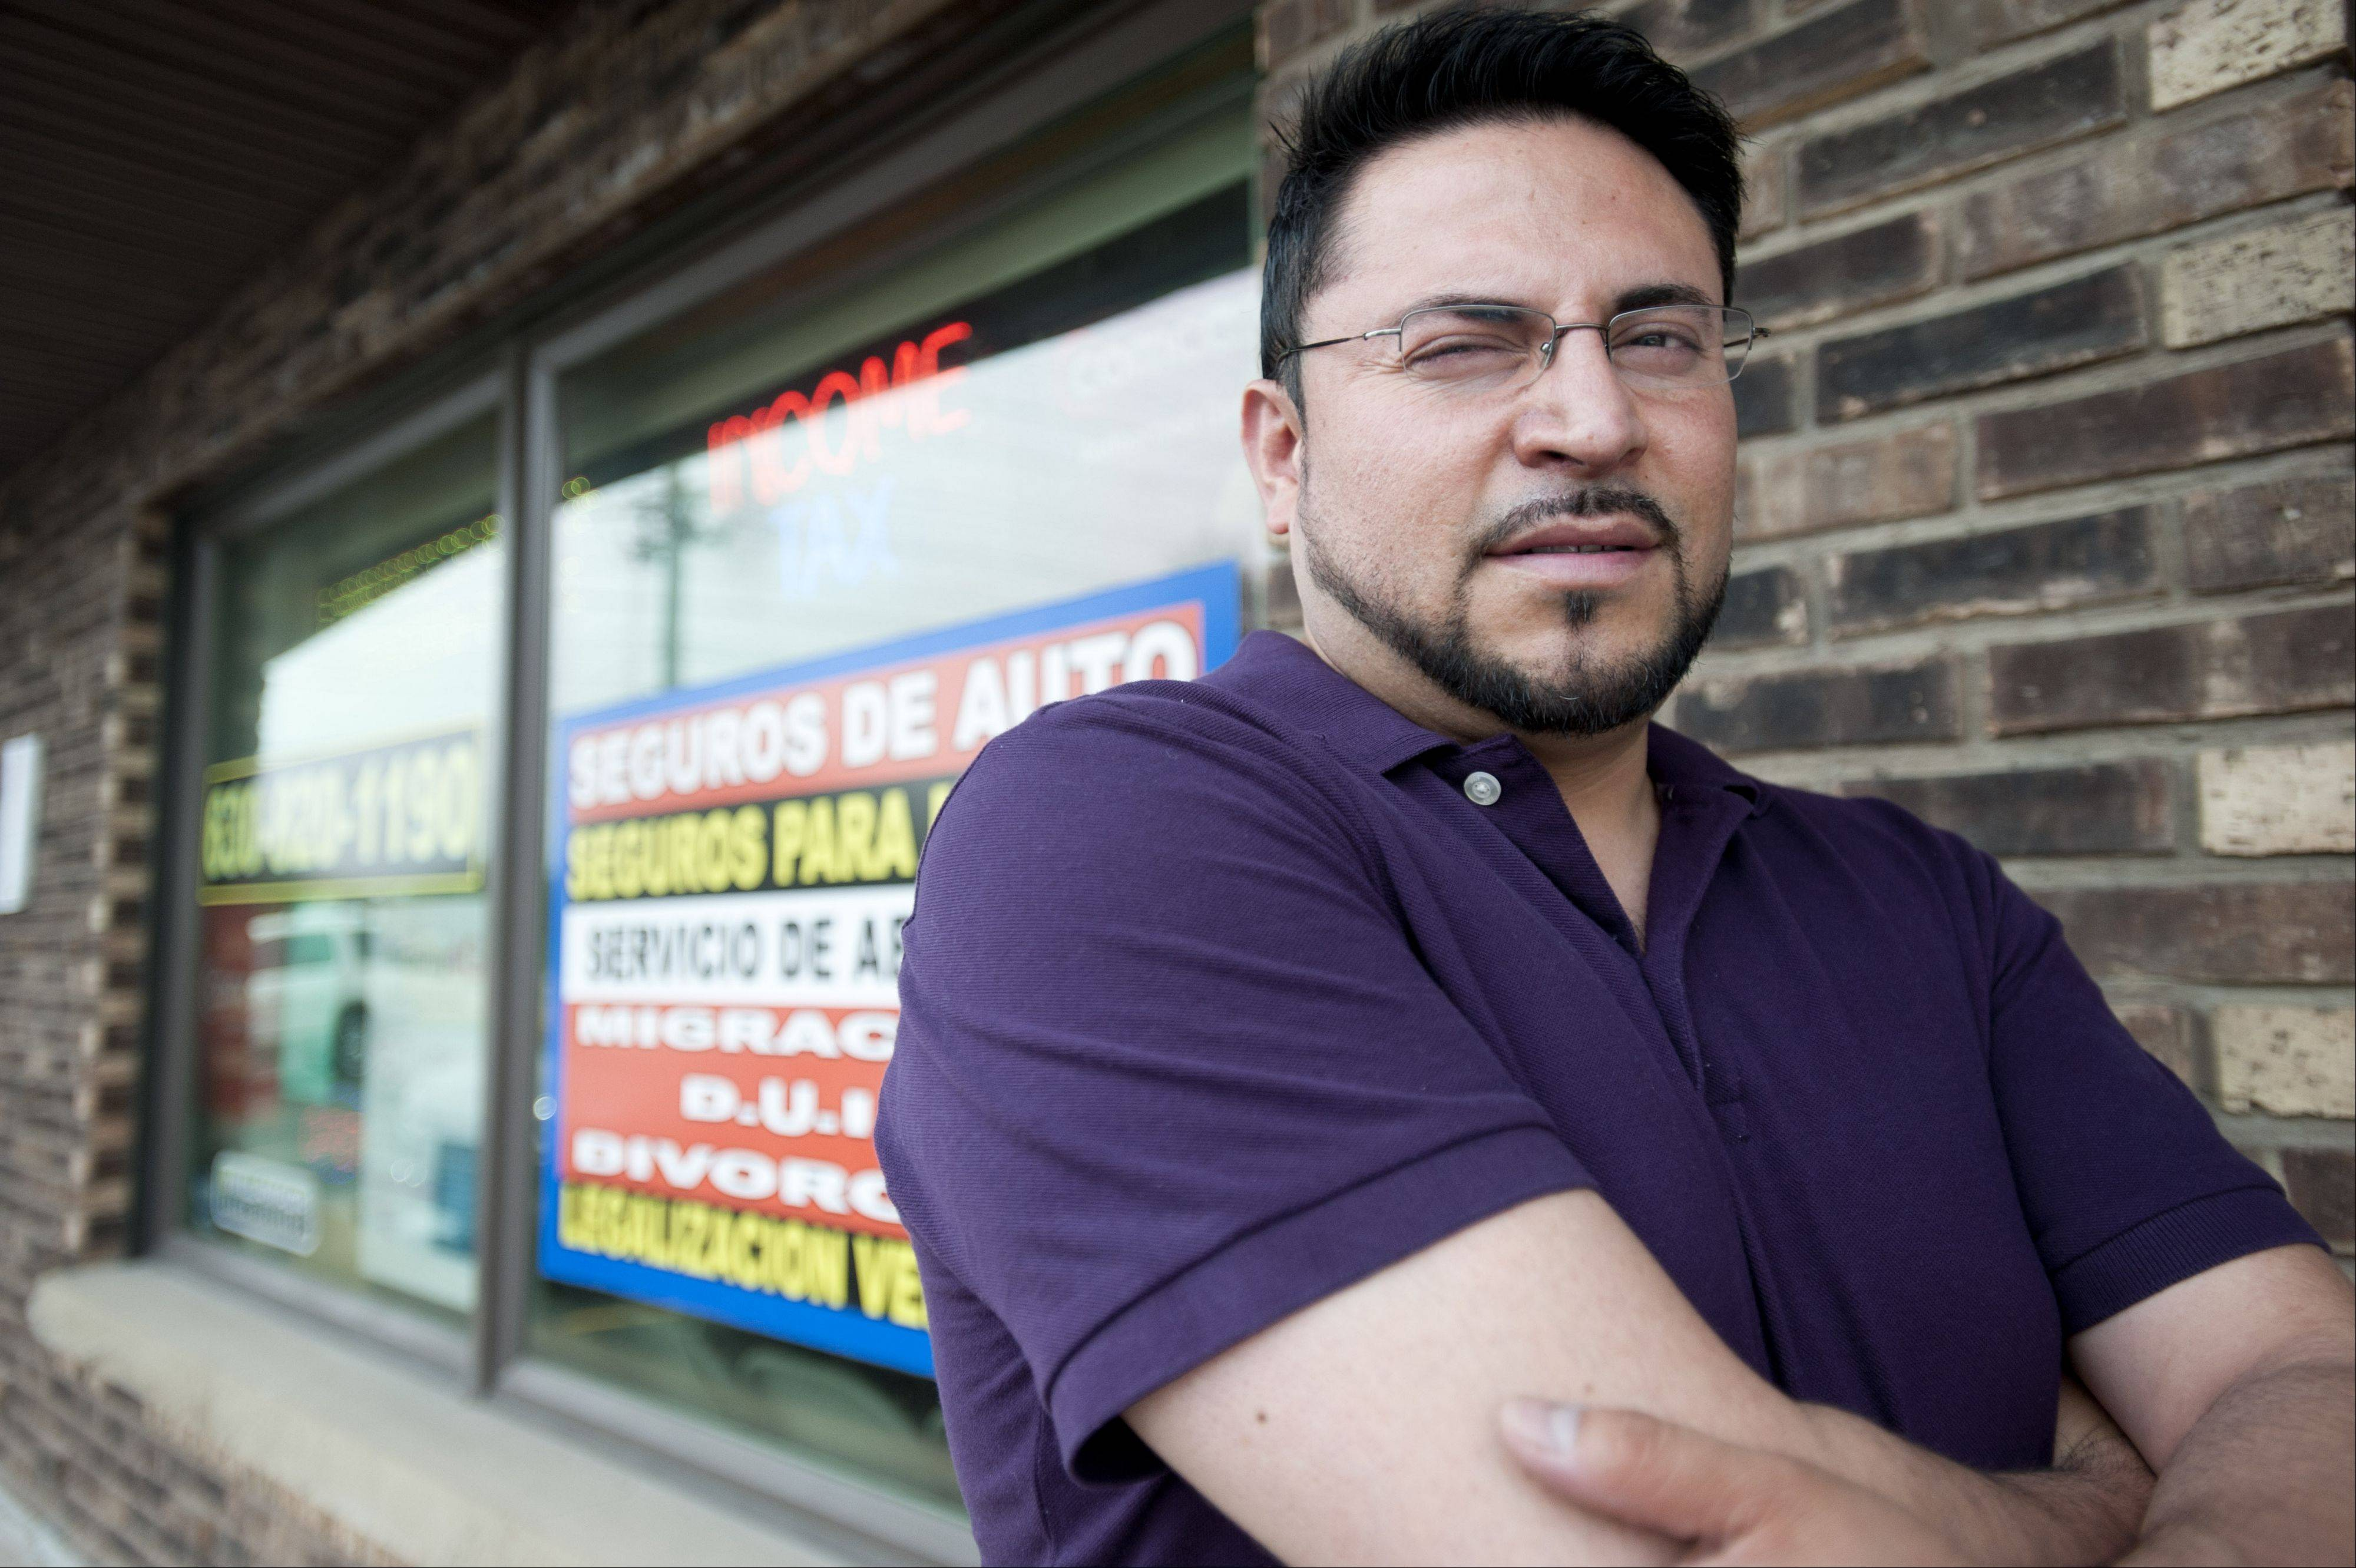 Alberto Ulage is an Aurora business owner who voted in the Mexican presidential election via absentee ballot. He believes Mexicans abroad must make an effort to vote.